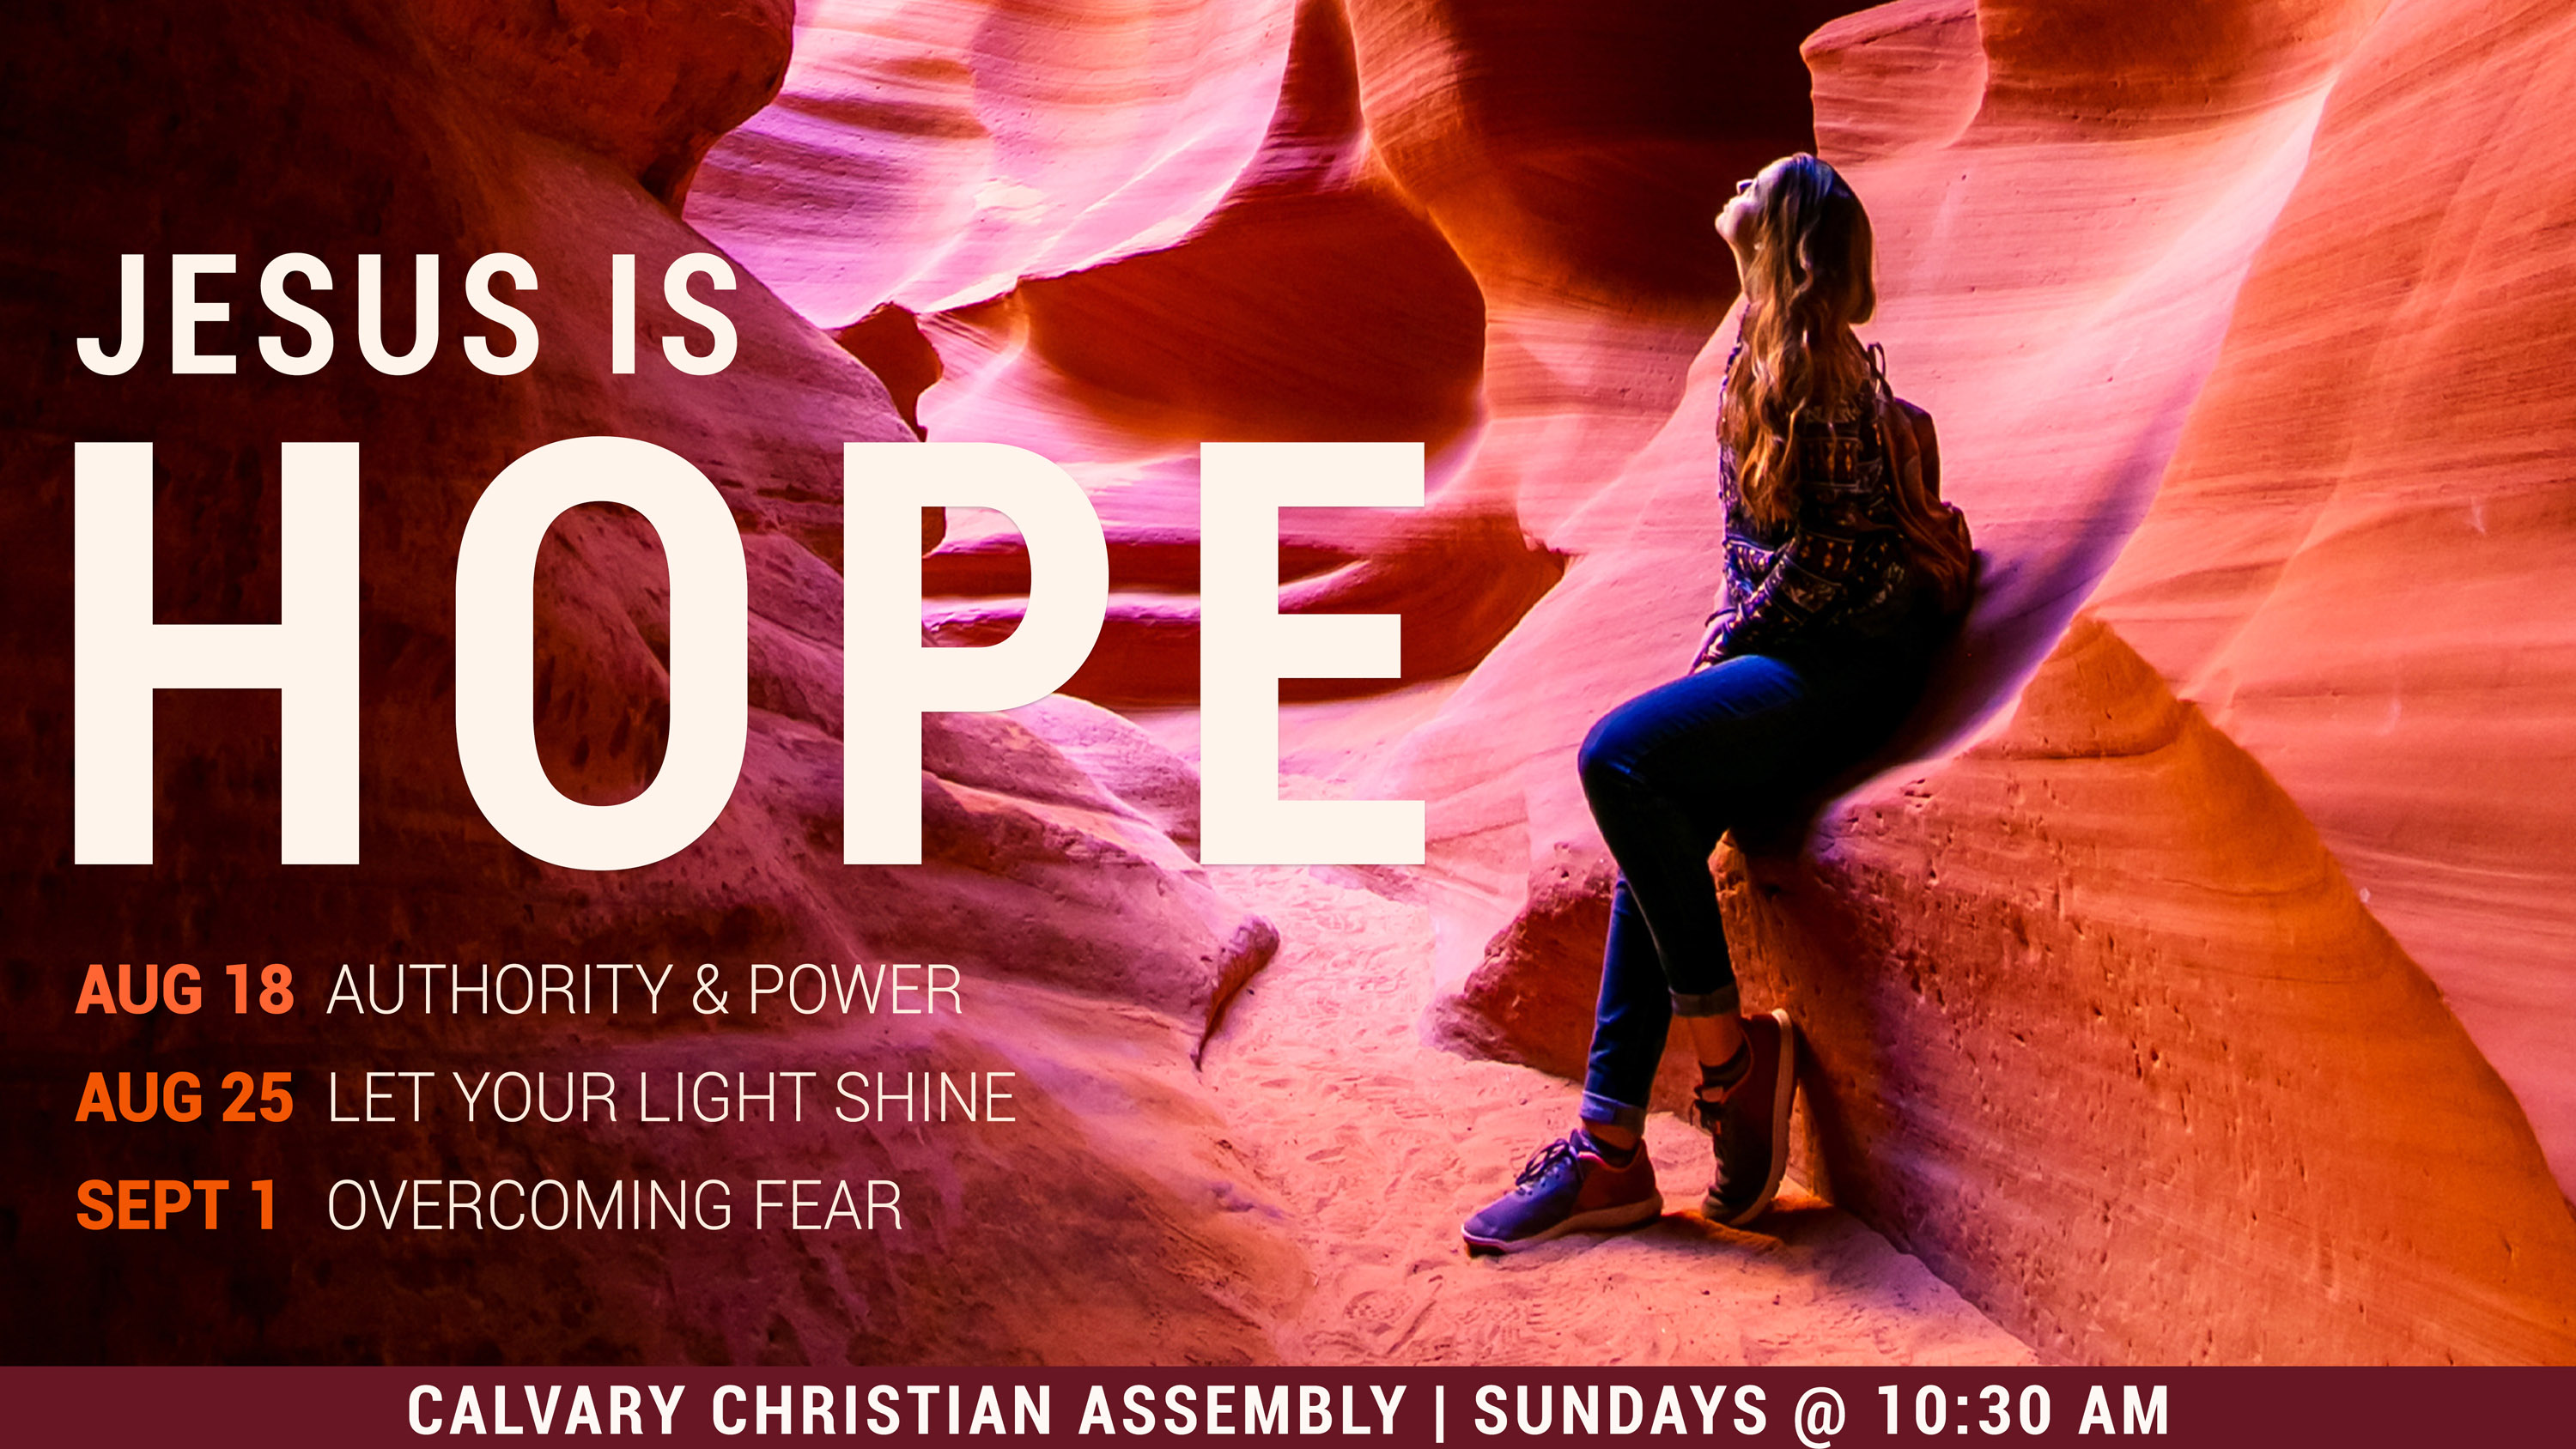 Jesus Is Hope: Let Your Light Shine